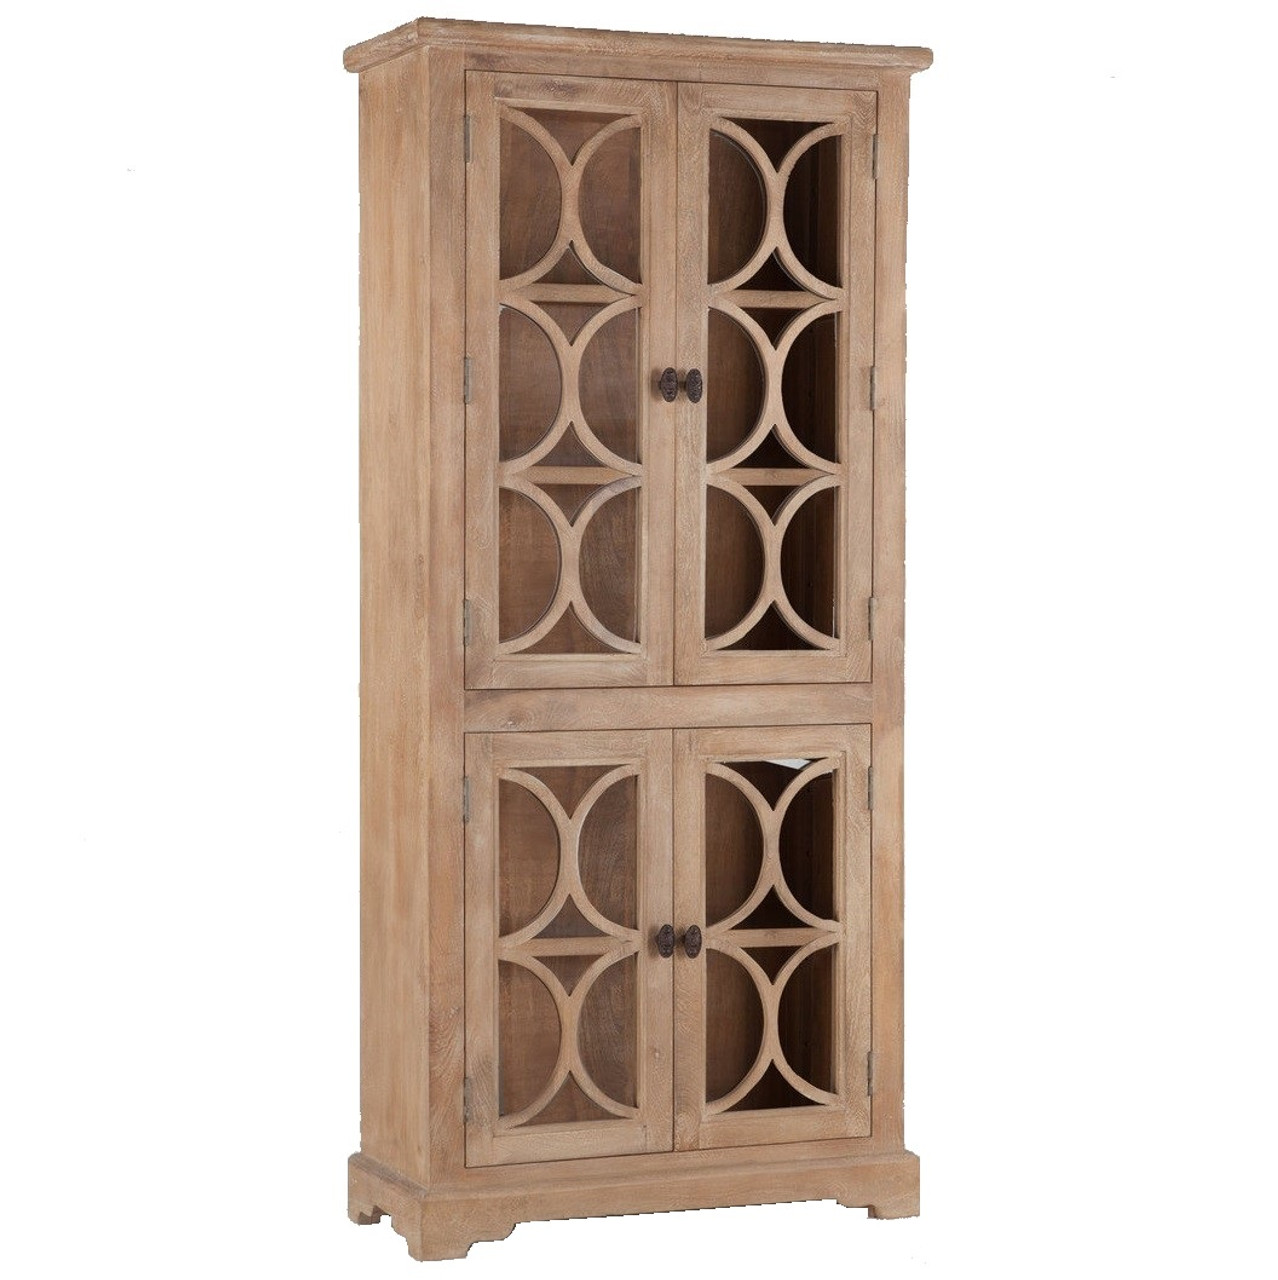 French Glass Kitchen Cabinet Doors: French Farmhouse Solid Wood Display Cabinet With Glass